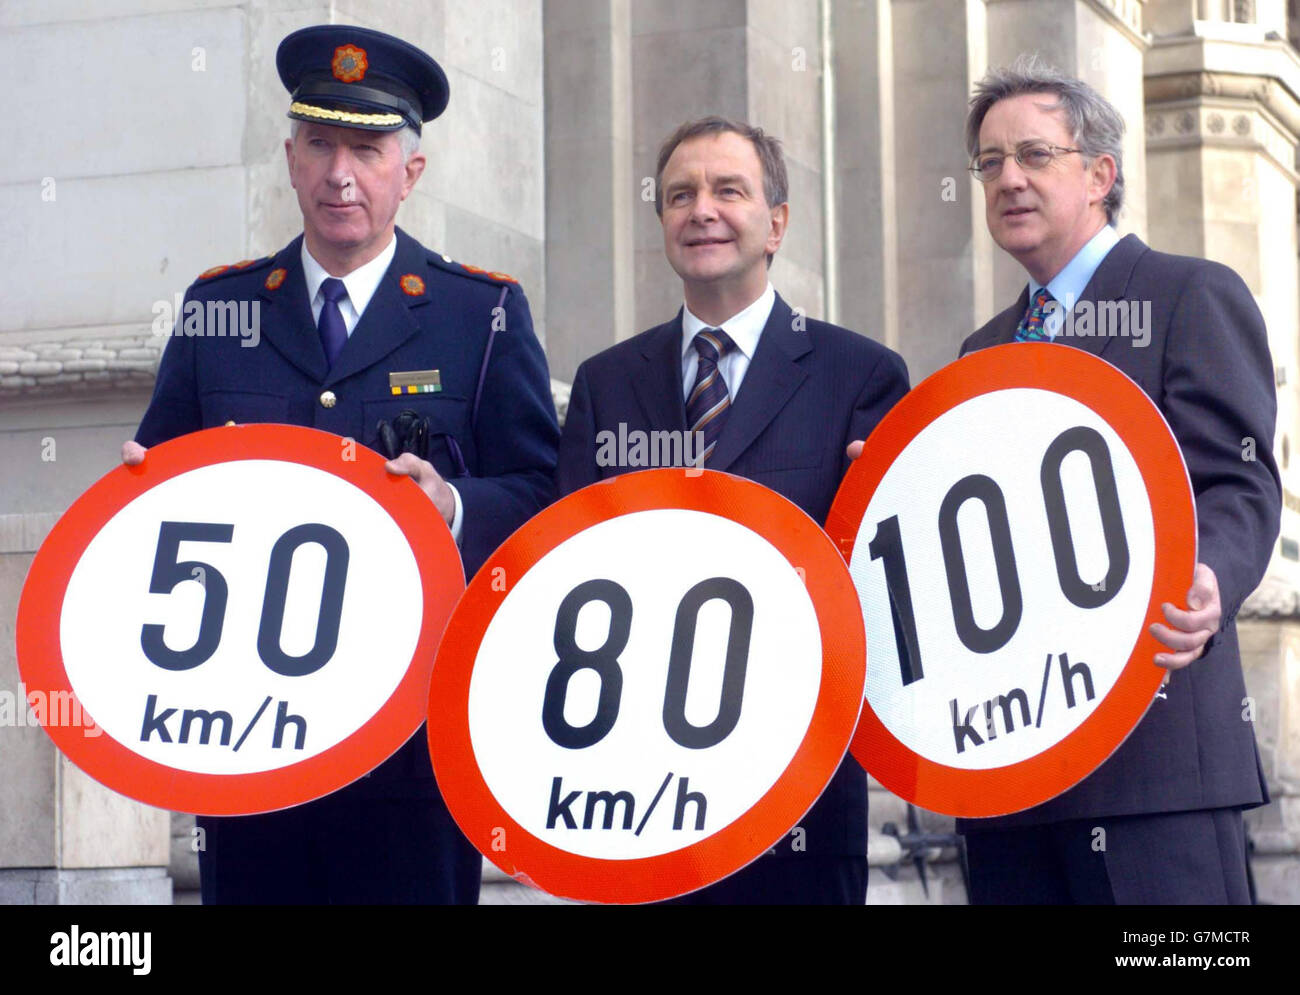 Irish Metric Speed Limits - Westin Hotel, Dublin - Stock Image